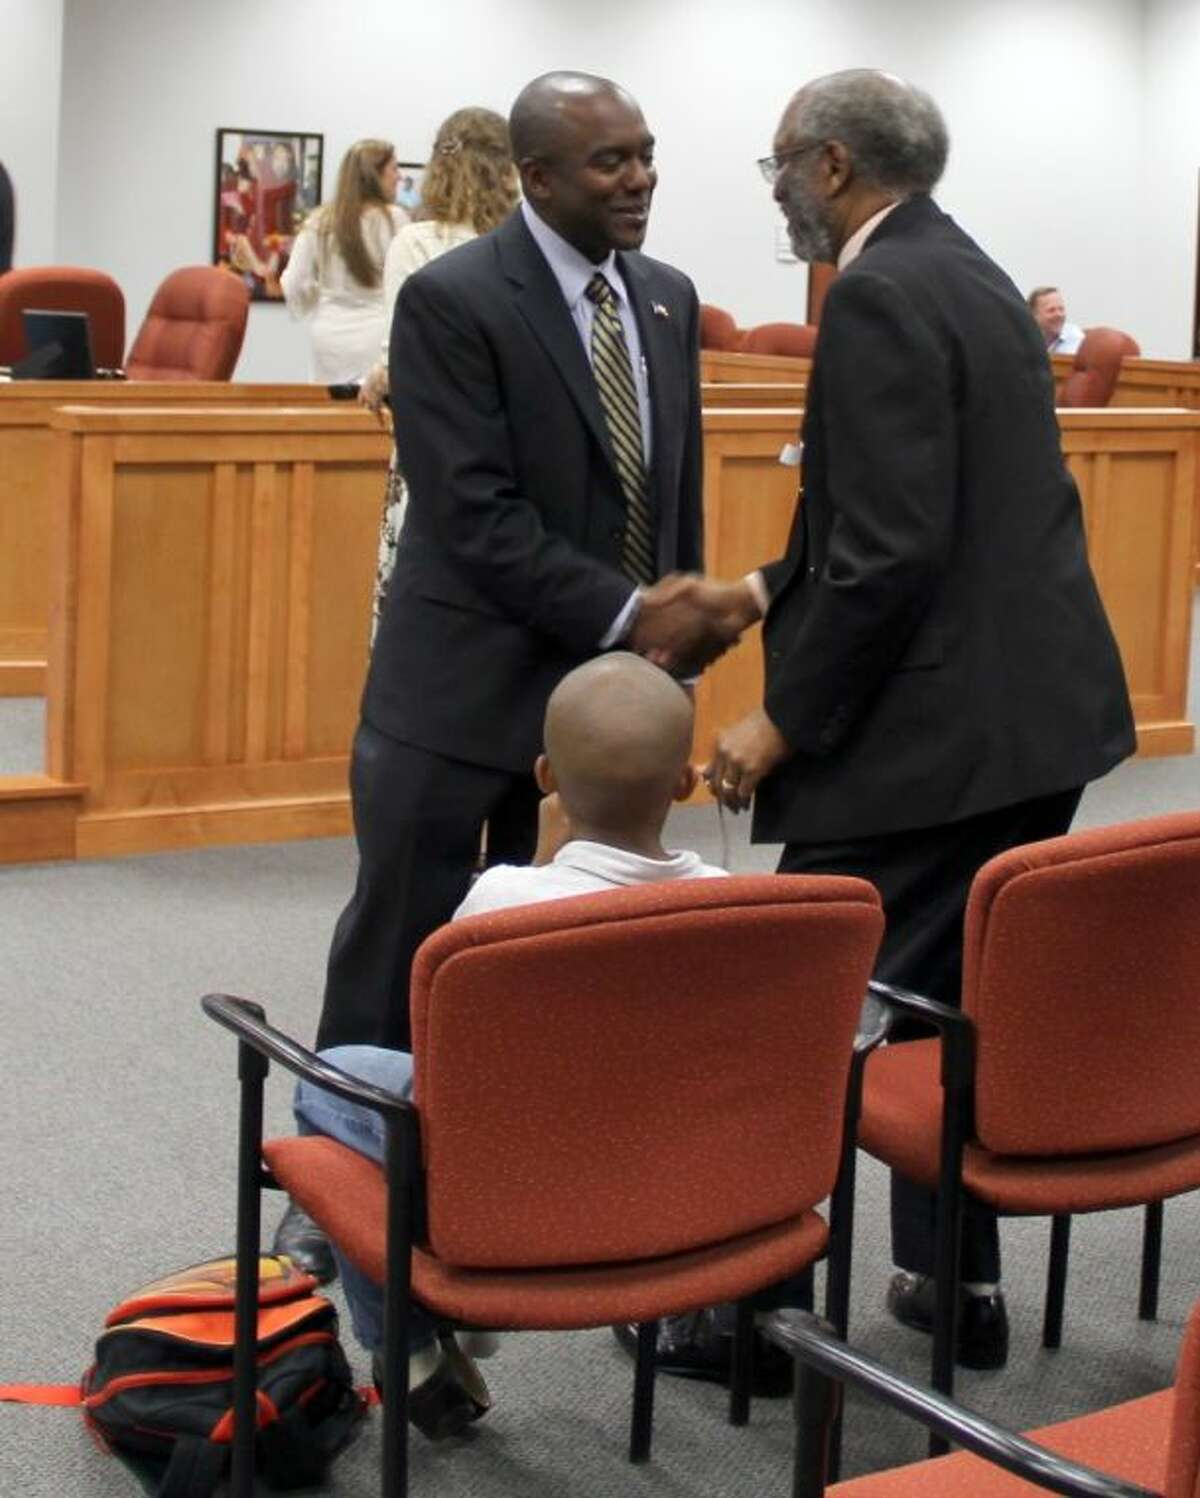 Pearland ISD trustee Charles Gooden Jr., left, shown with his father, Charles Gooden Sr., disavowed a letter urging support for his re-election.